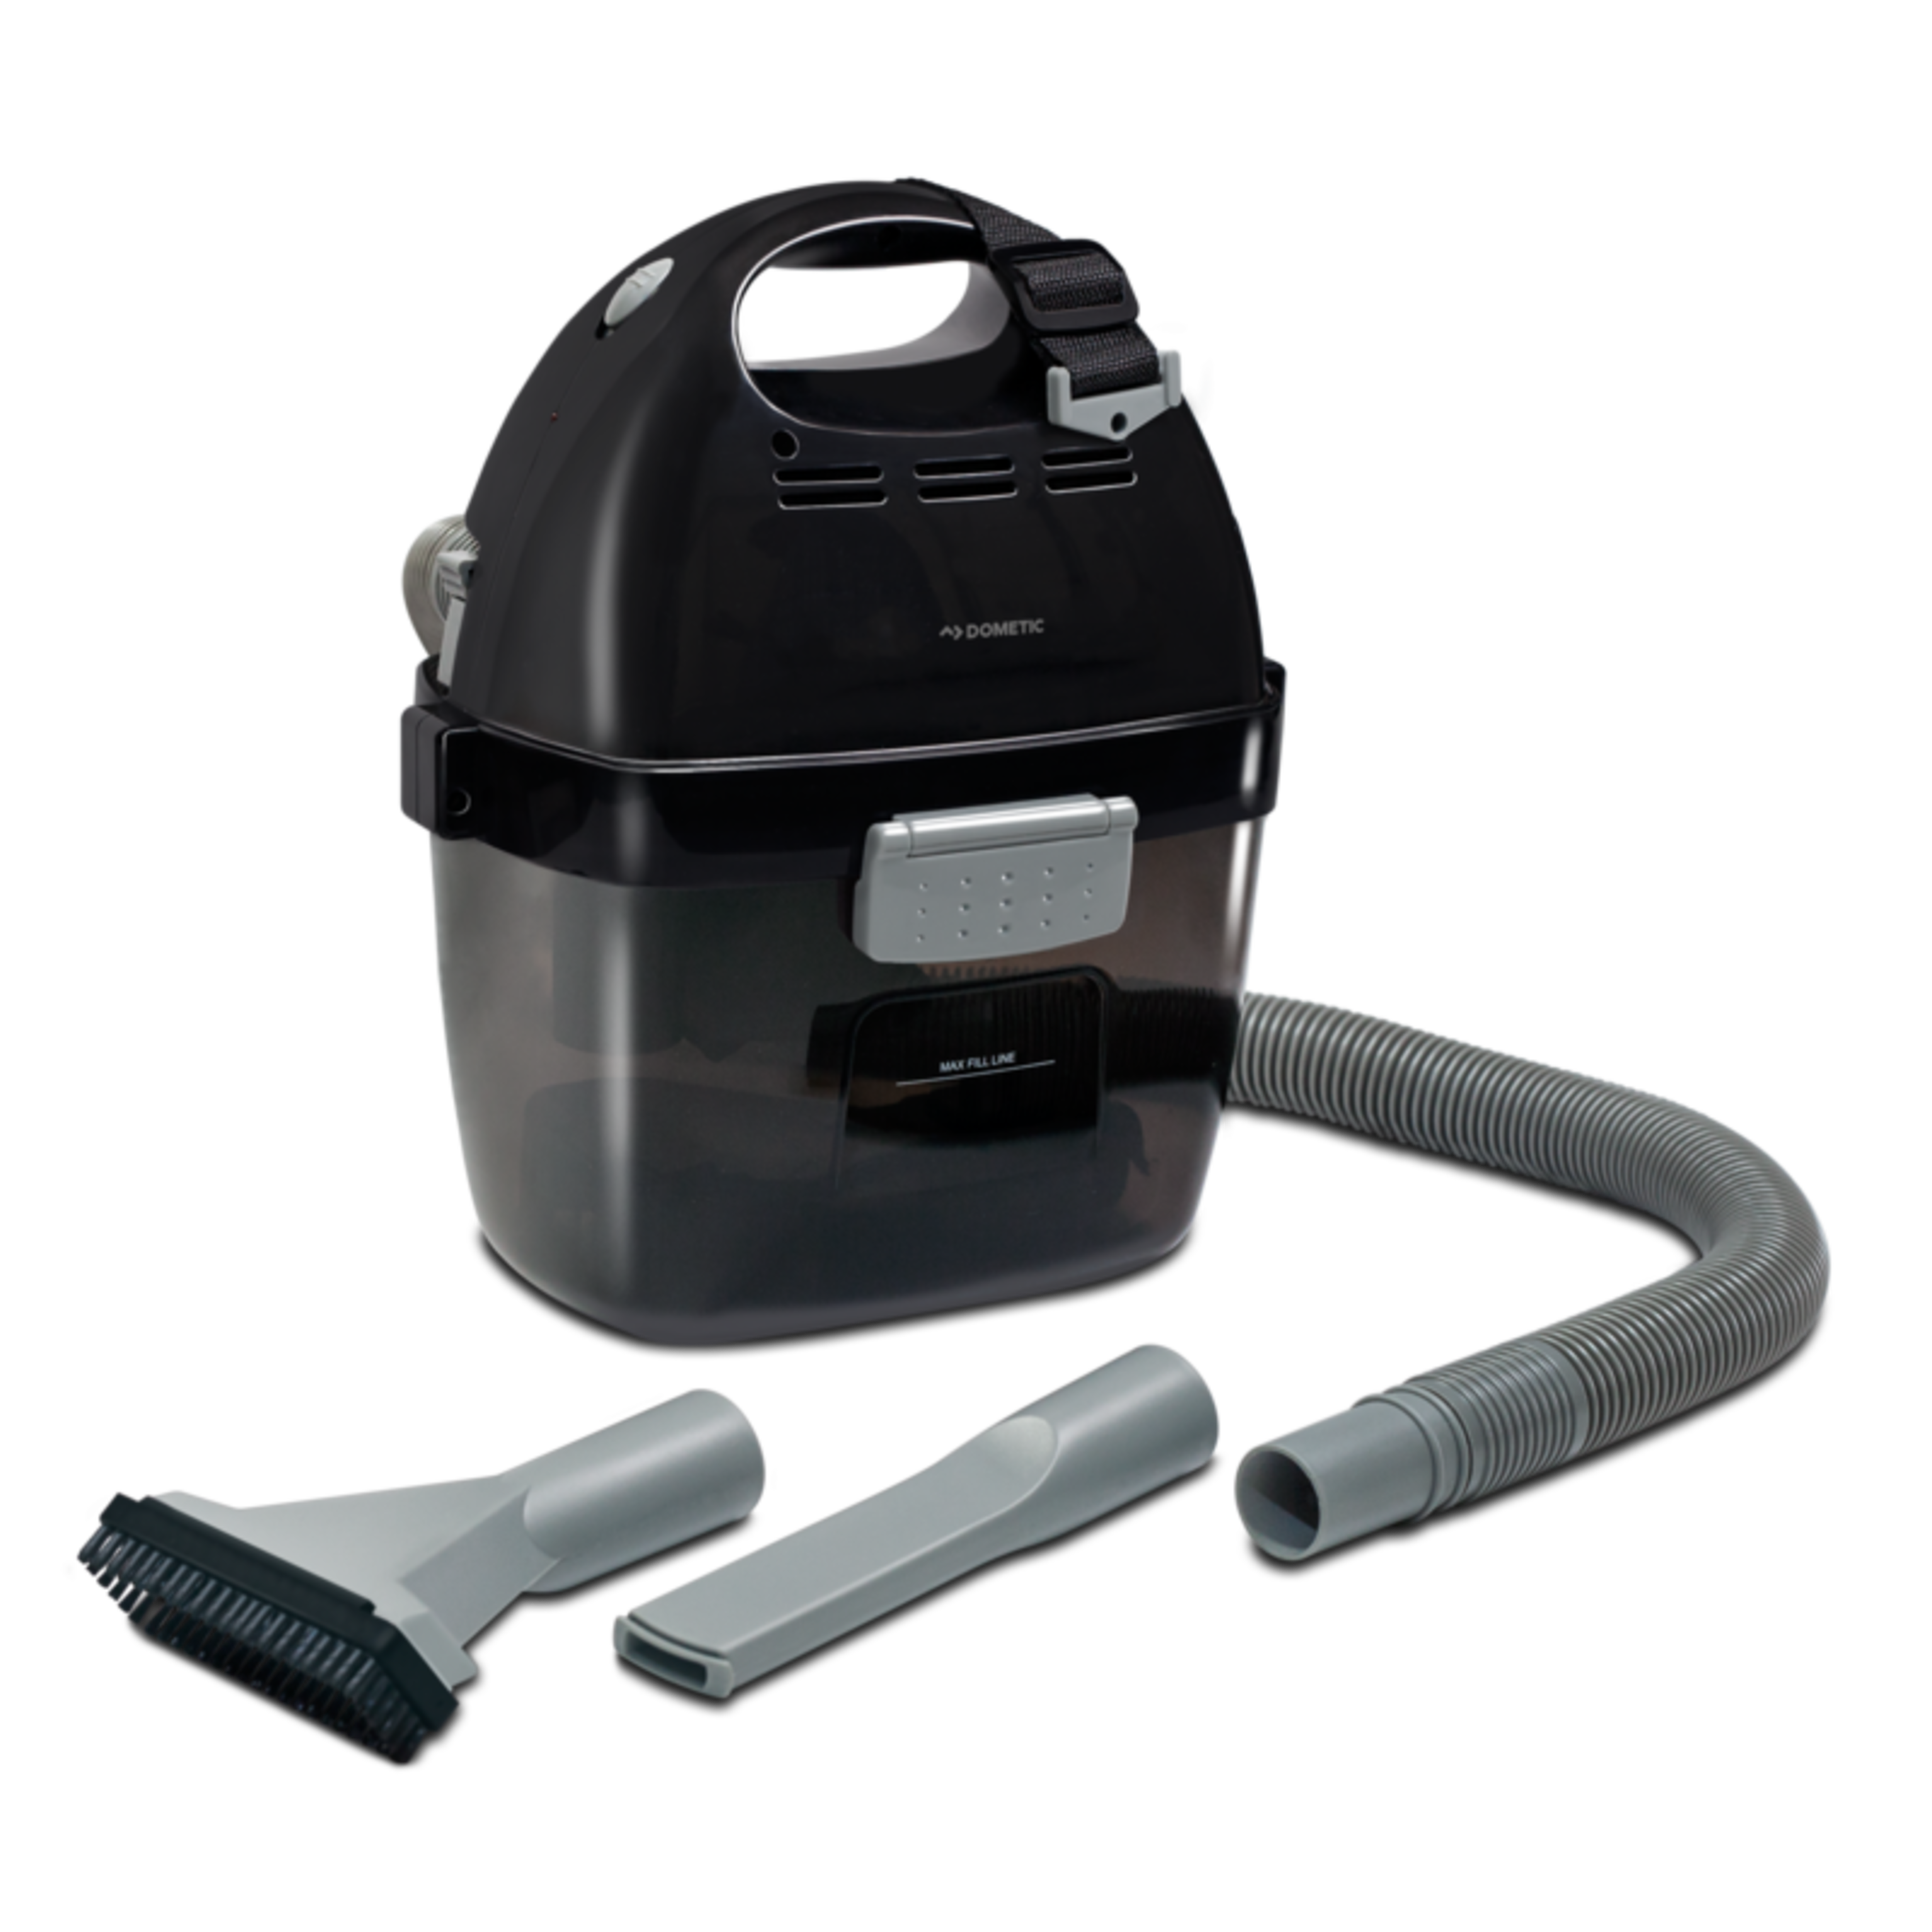 Battery-pwered wet- & dry vacuum cleaner